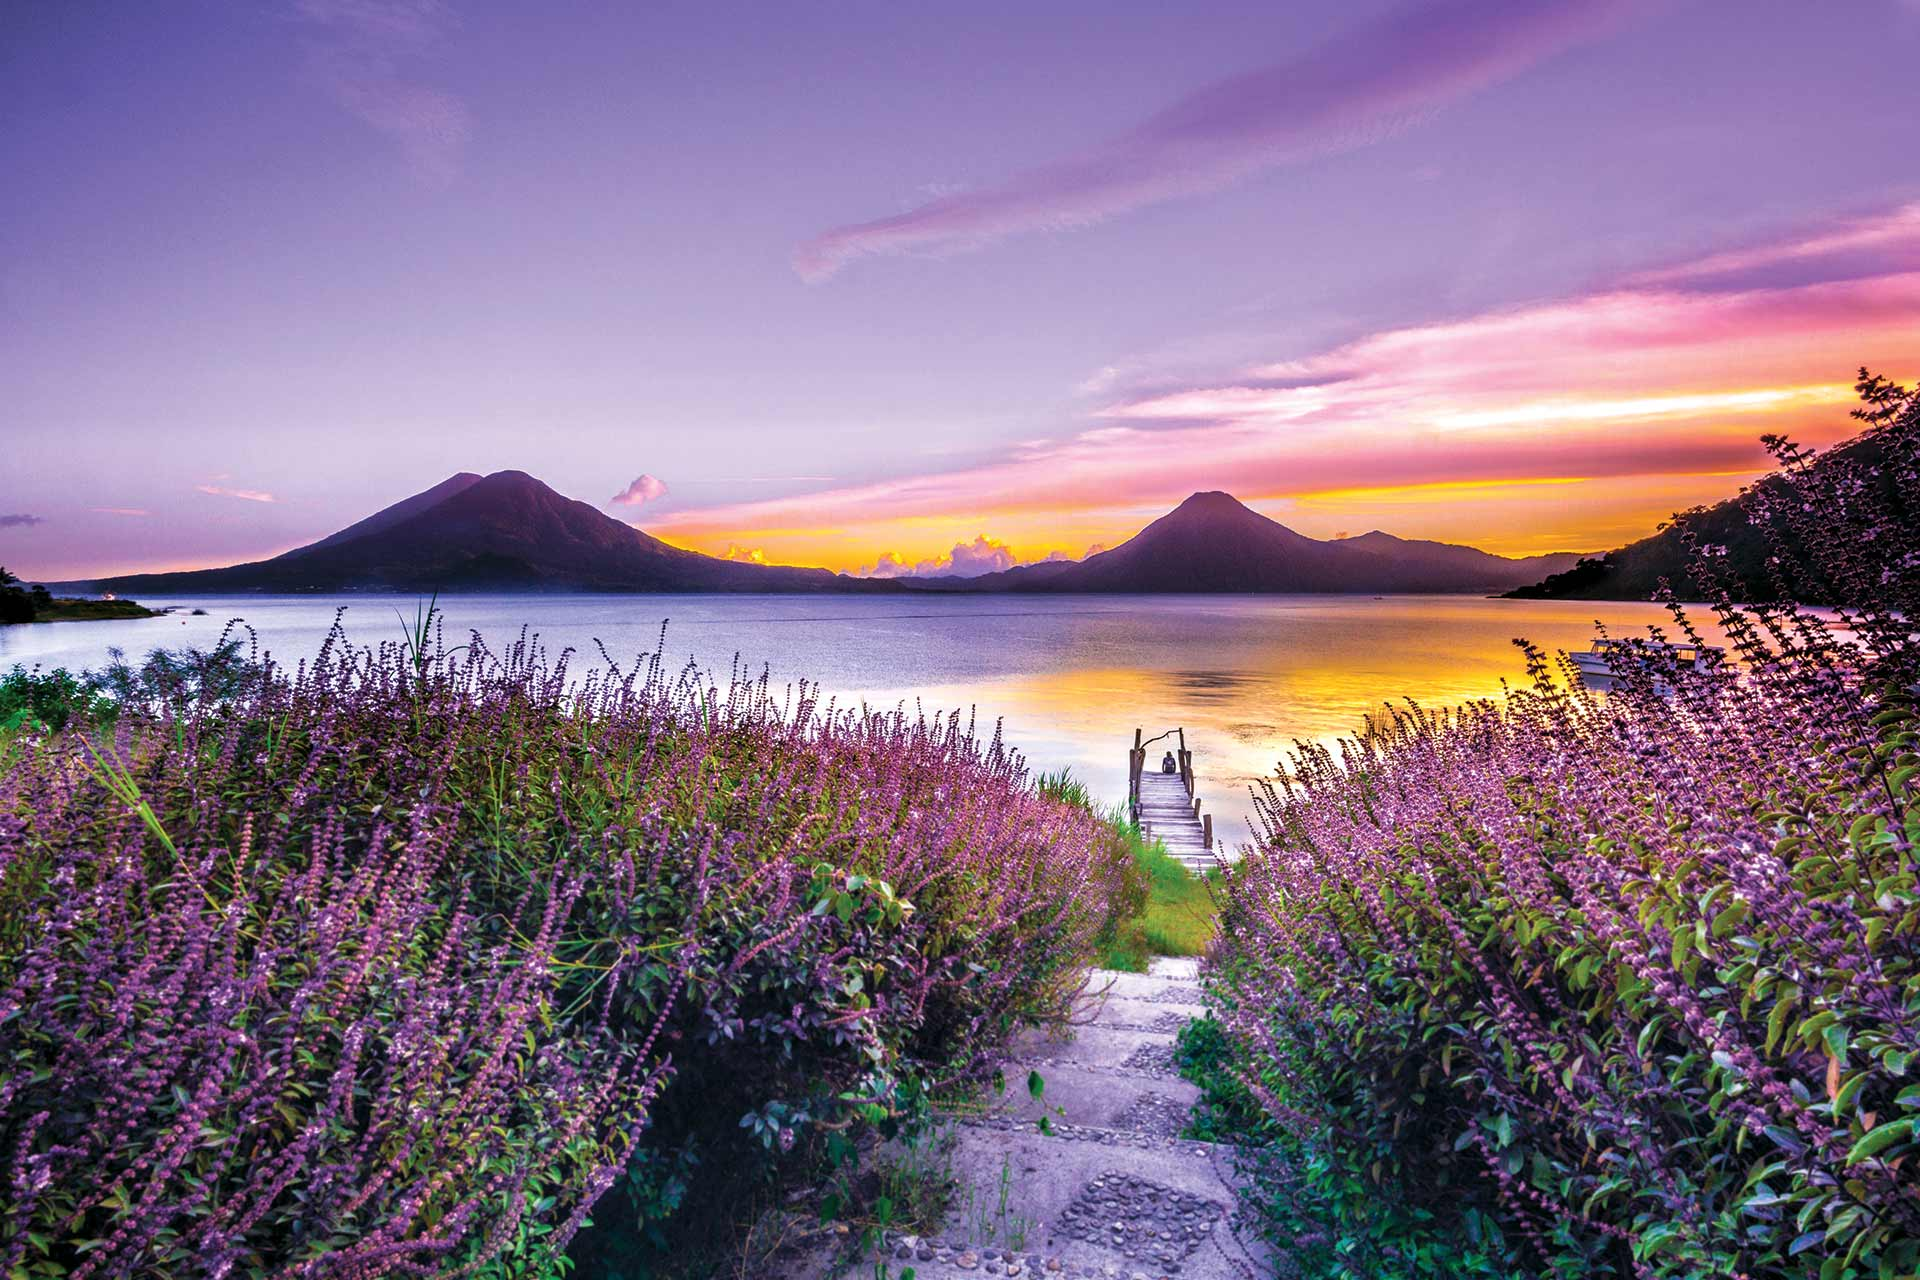 A view from a field of an orange and purple sunset over a lake